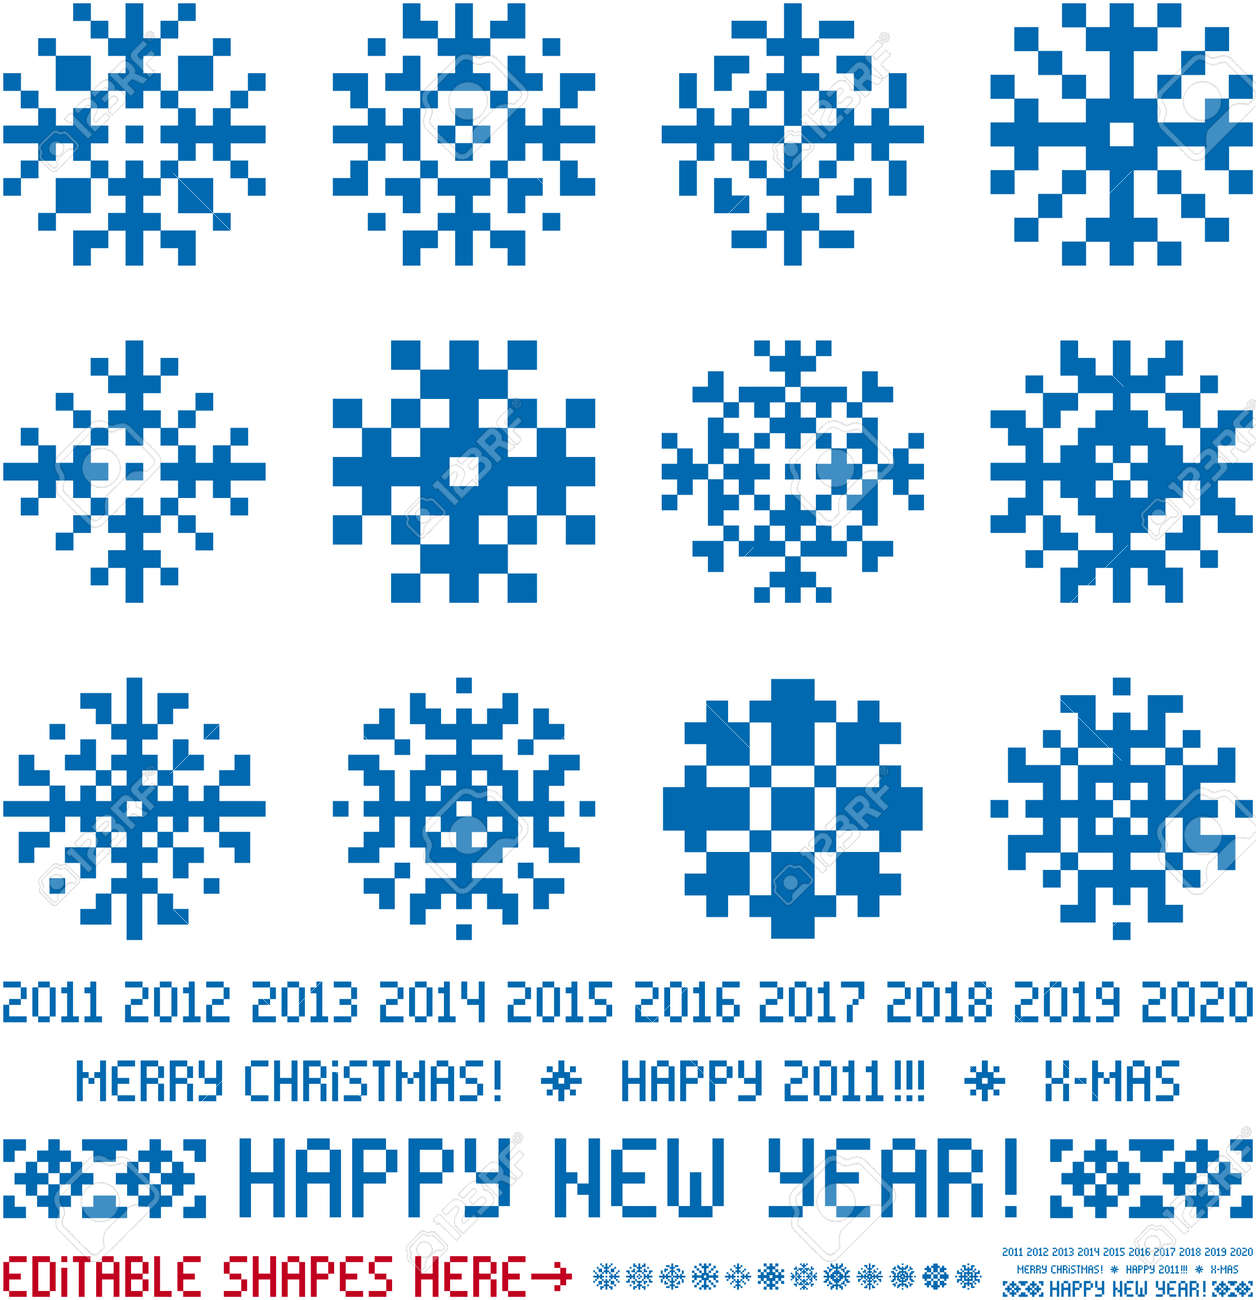 Snowflakes In Pixel Style Christmas And New Year Greetings 2011